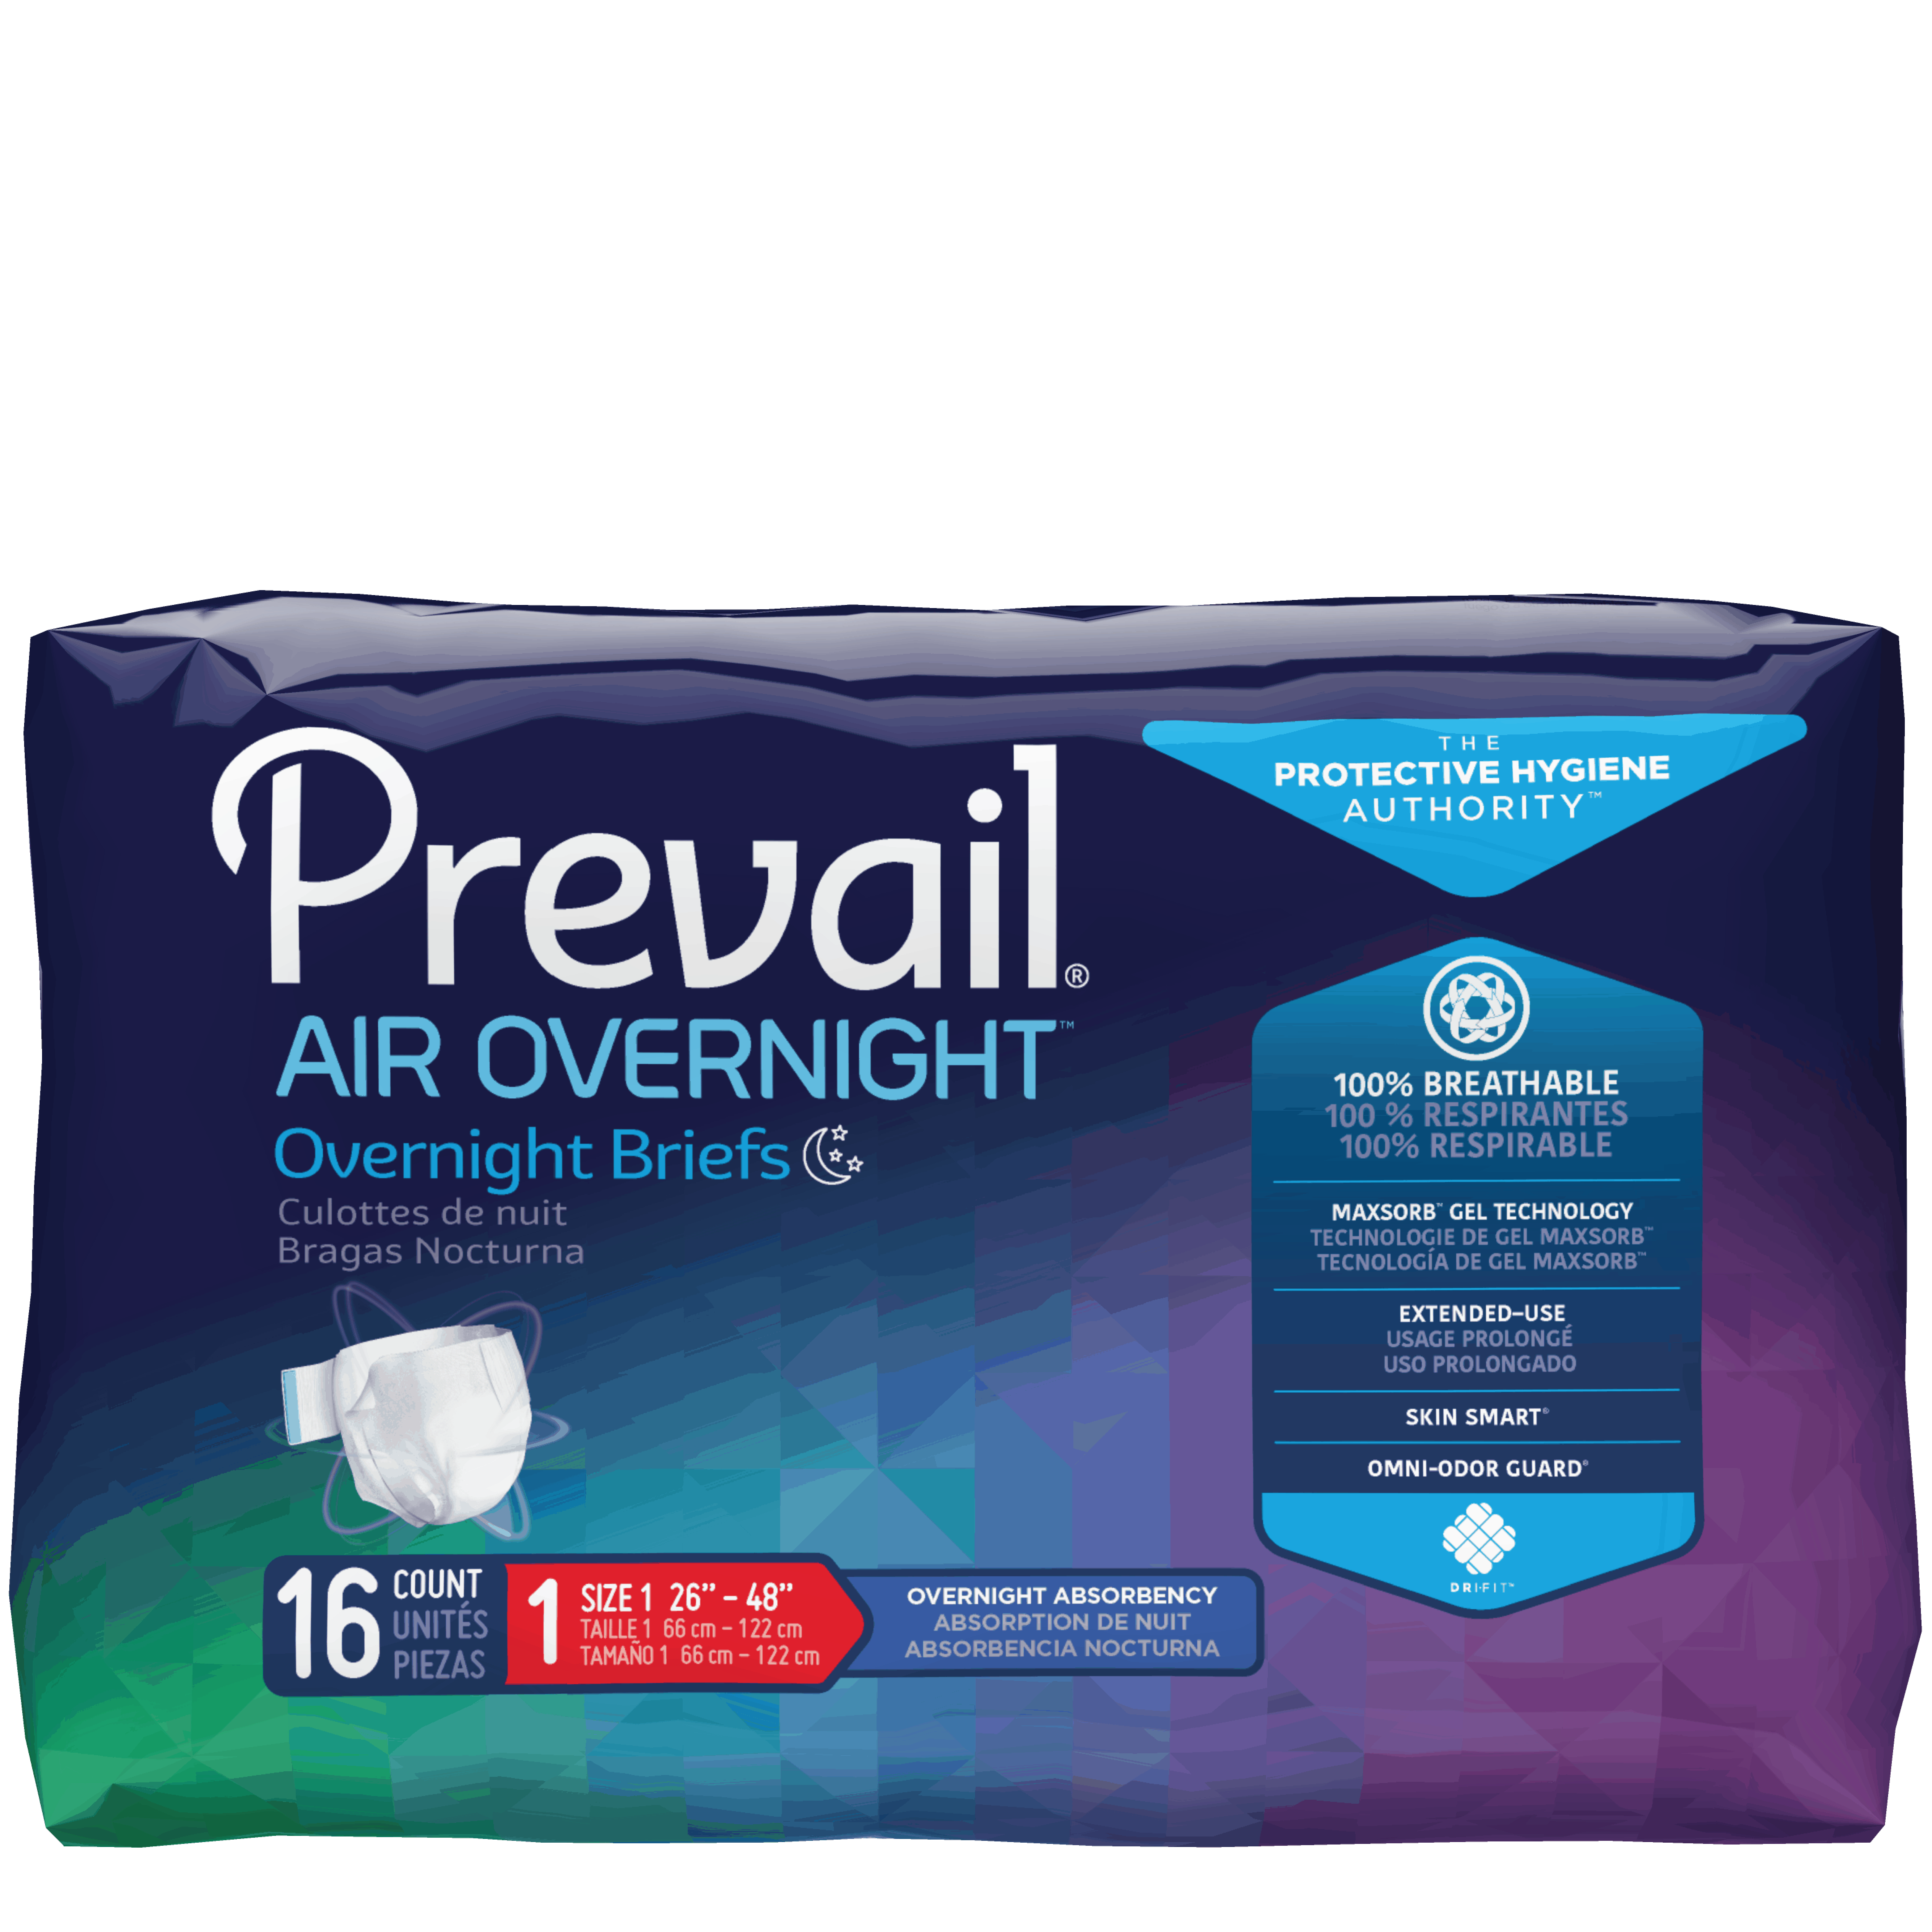 prevail_3d_case_images_air_briefs_ngx-012_front_1.png